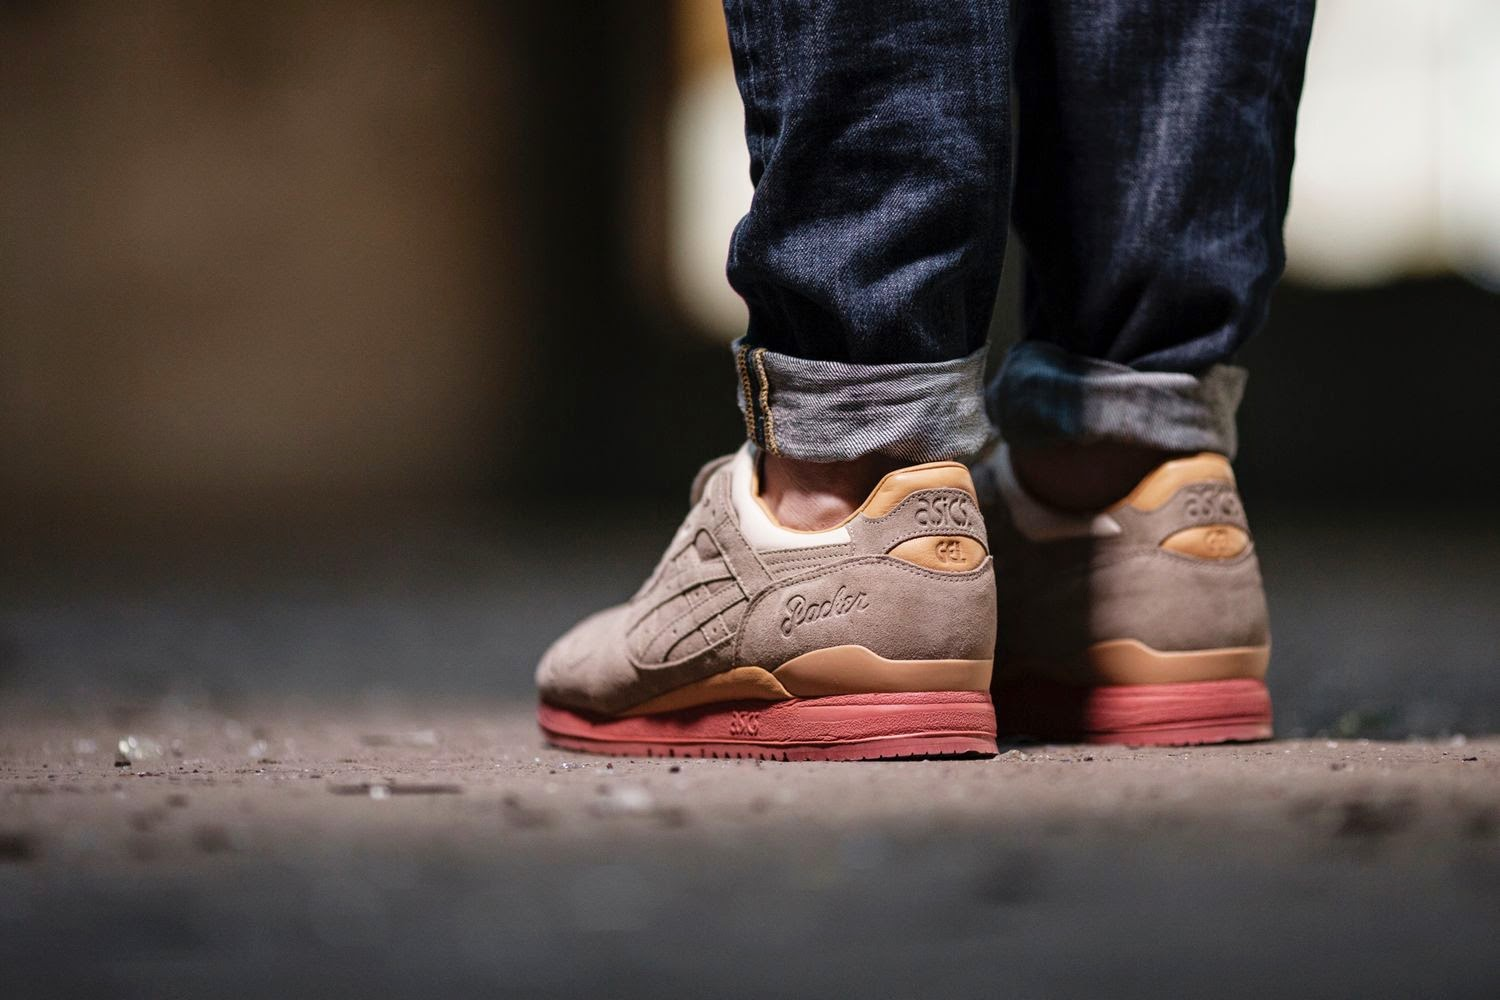 Asics Tiger, Asics, Asics Lifestyle, Parker, Gel-Lyte III, sneakers, calzado, zapatillas, sportstyle, sportwear, moda masculina, Suits and Shirts,